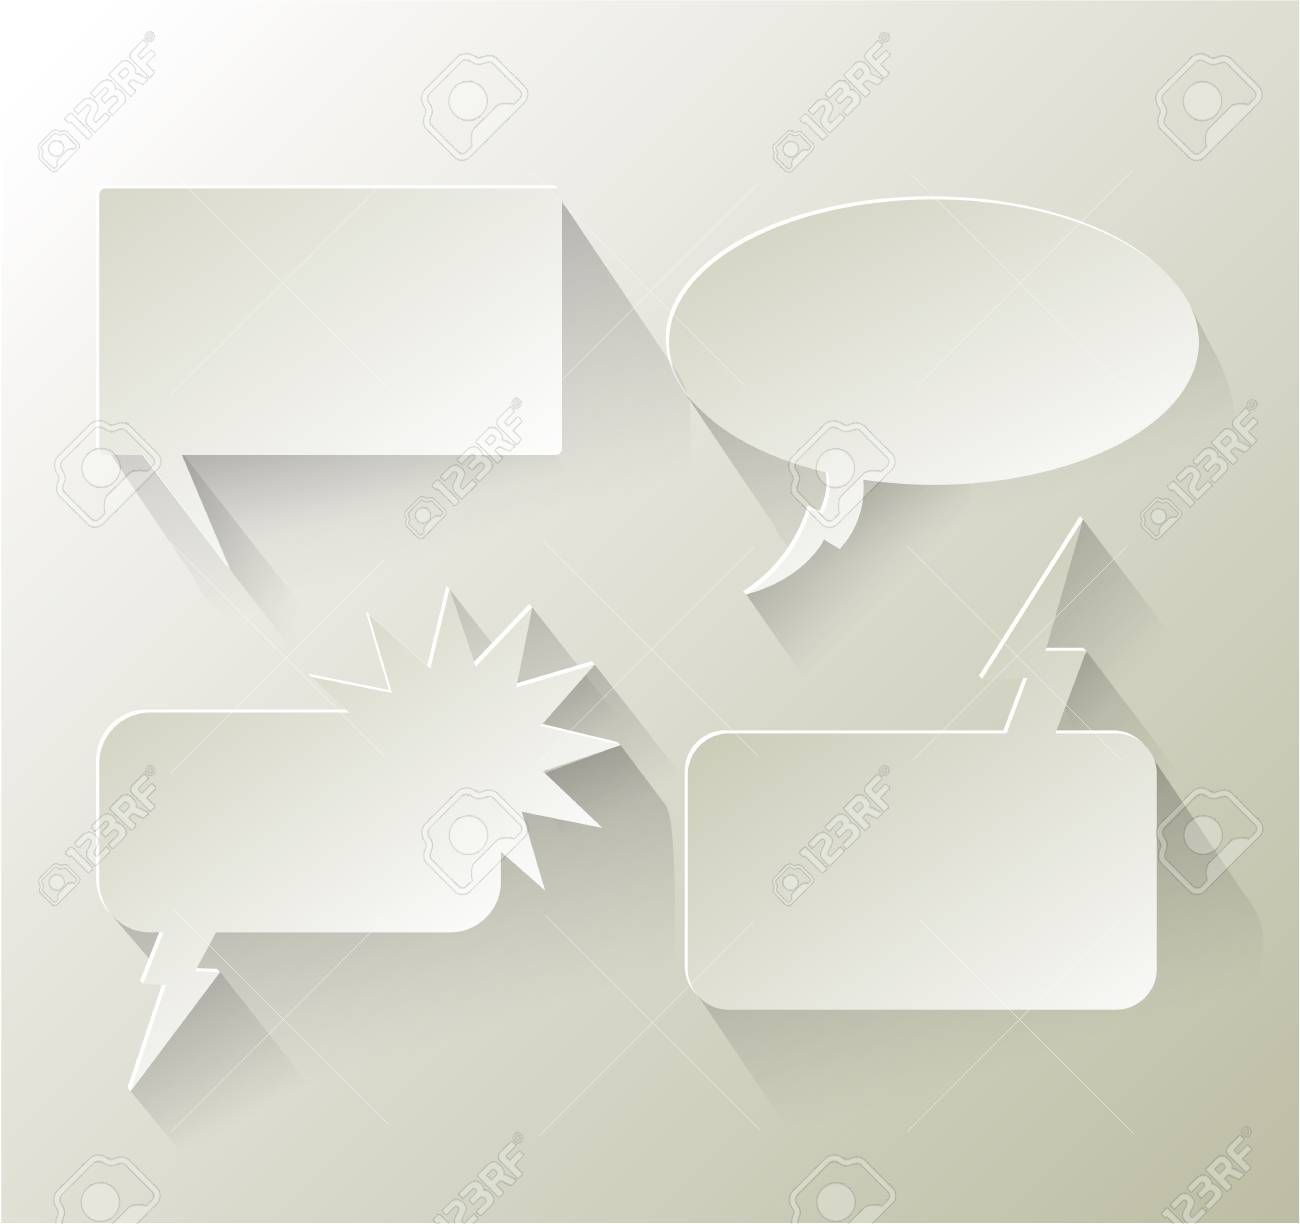 Abstract design speech bubble copyspace eps 10 Stock Vector - 24060802